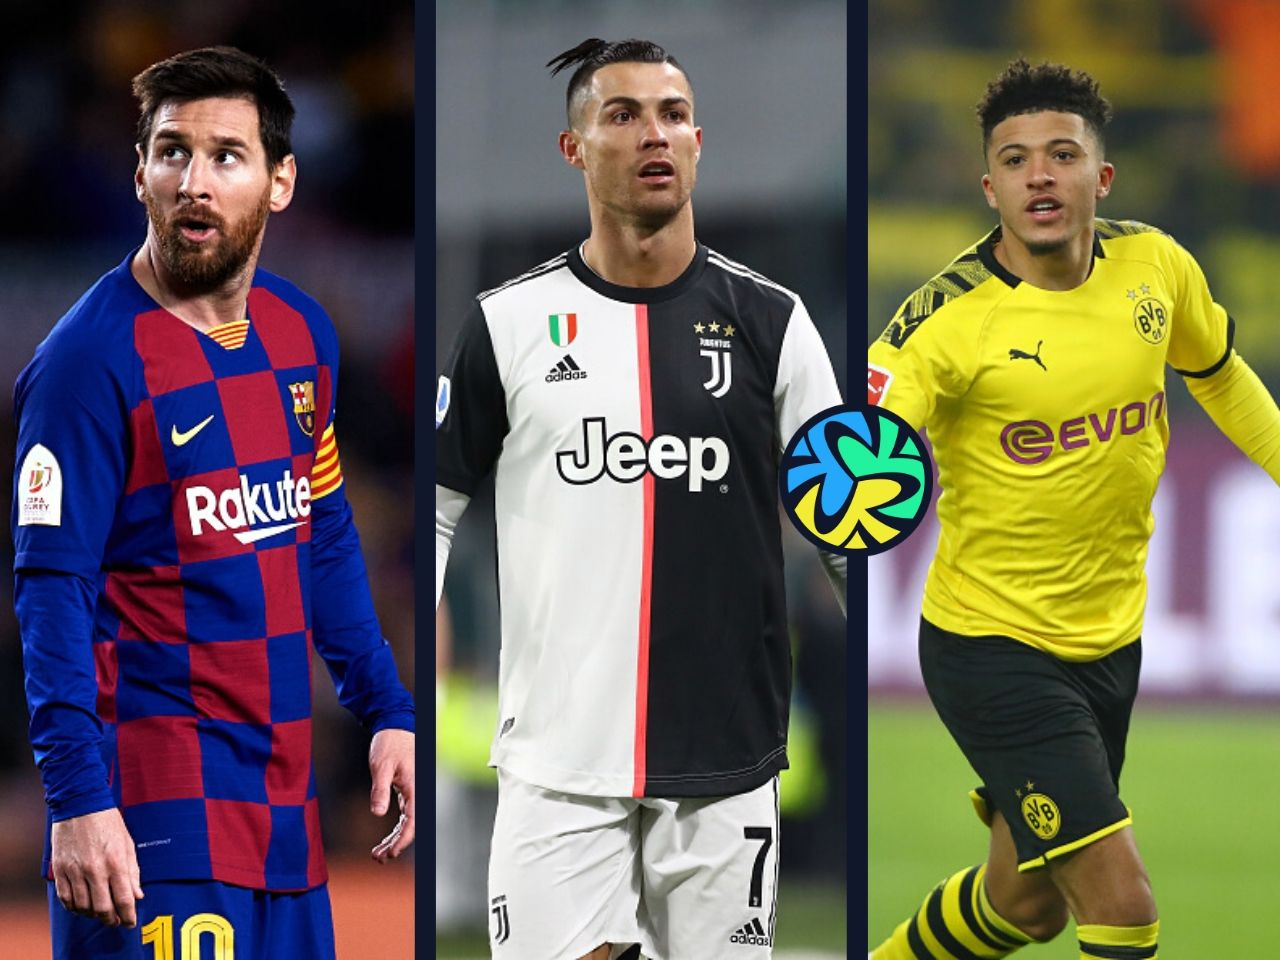 best football players in Europe